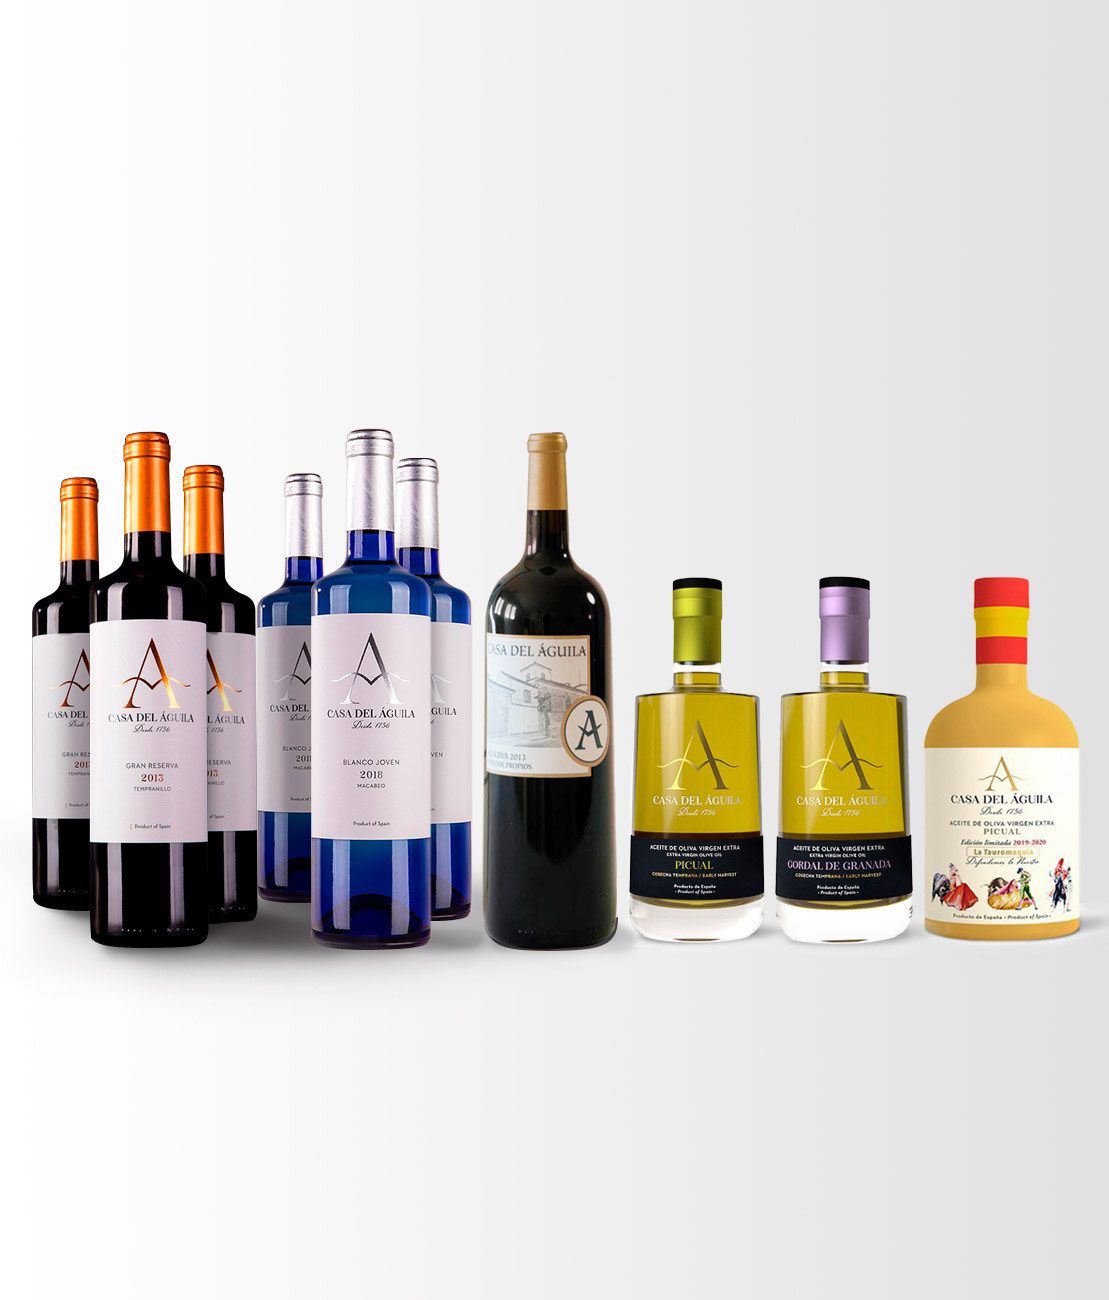 Este pack está compuesto por 3 botellas de Reserva, 3 de Blanco Macabeo, 1 botella Picual Reserva Familiar, 1 botella Picual Serie «Defendemos lo Nuestro» y 1 botella Gordal Reserva Familiar